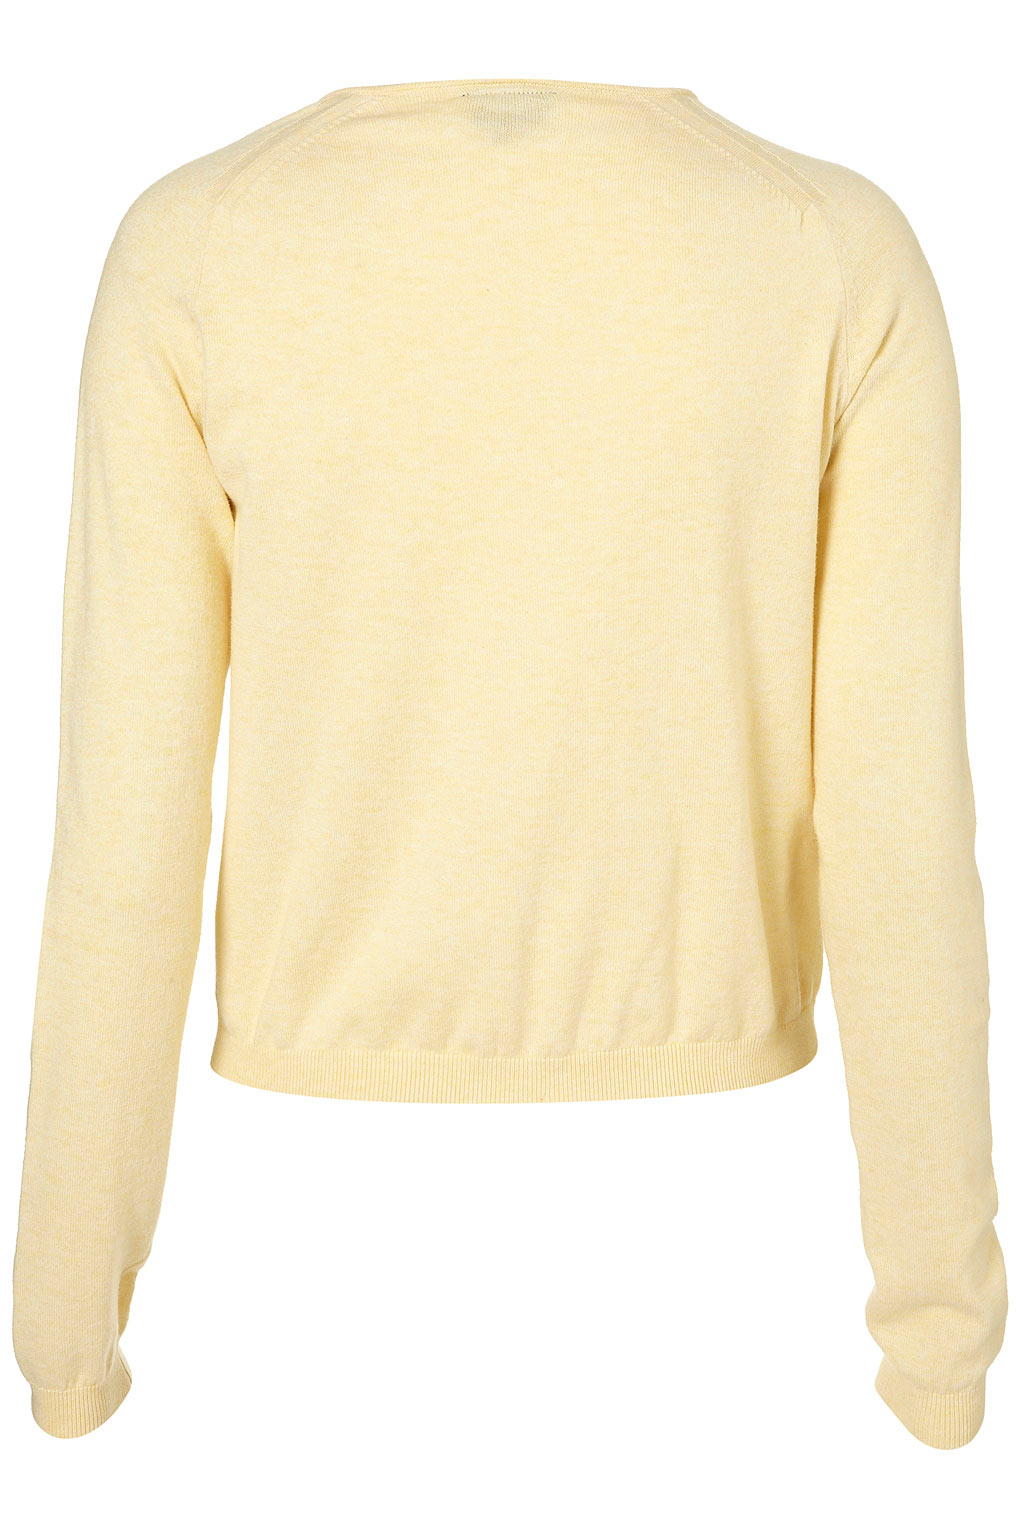 Topshop Knitted Crew Neck Cardigan in Yellow | Lyst